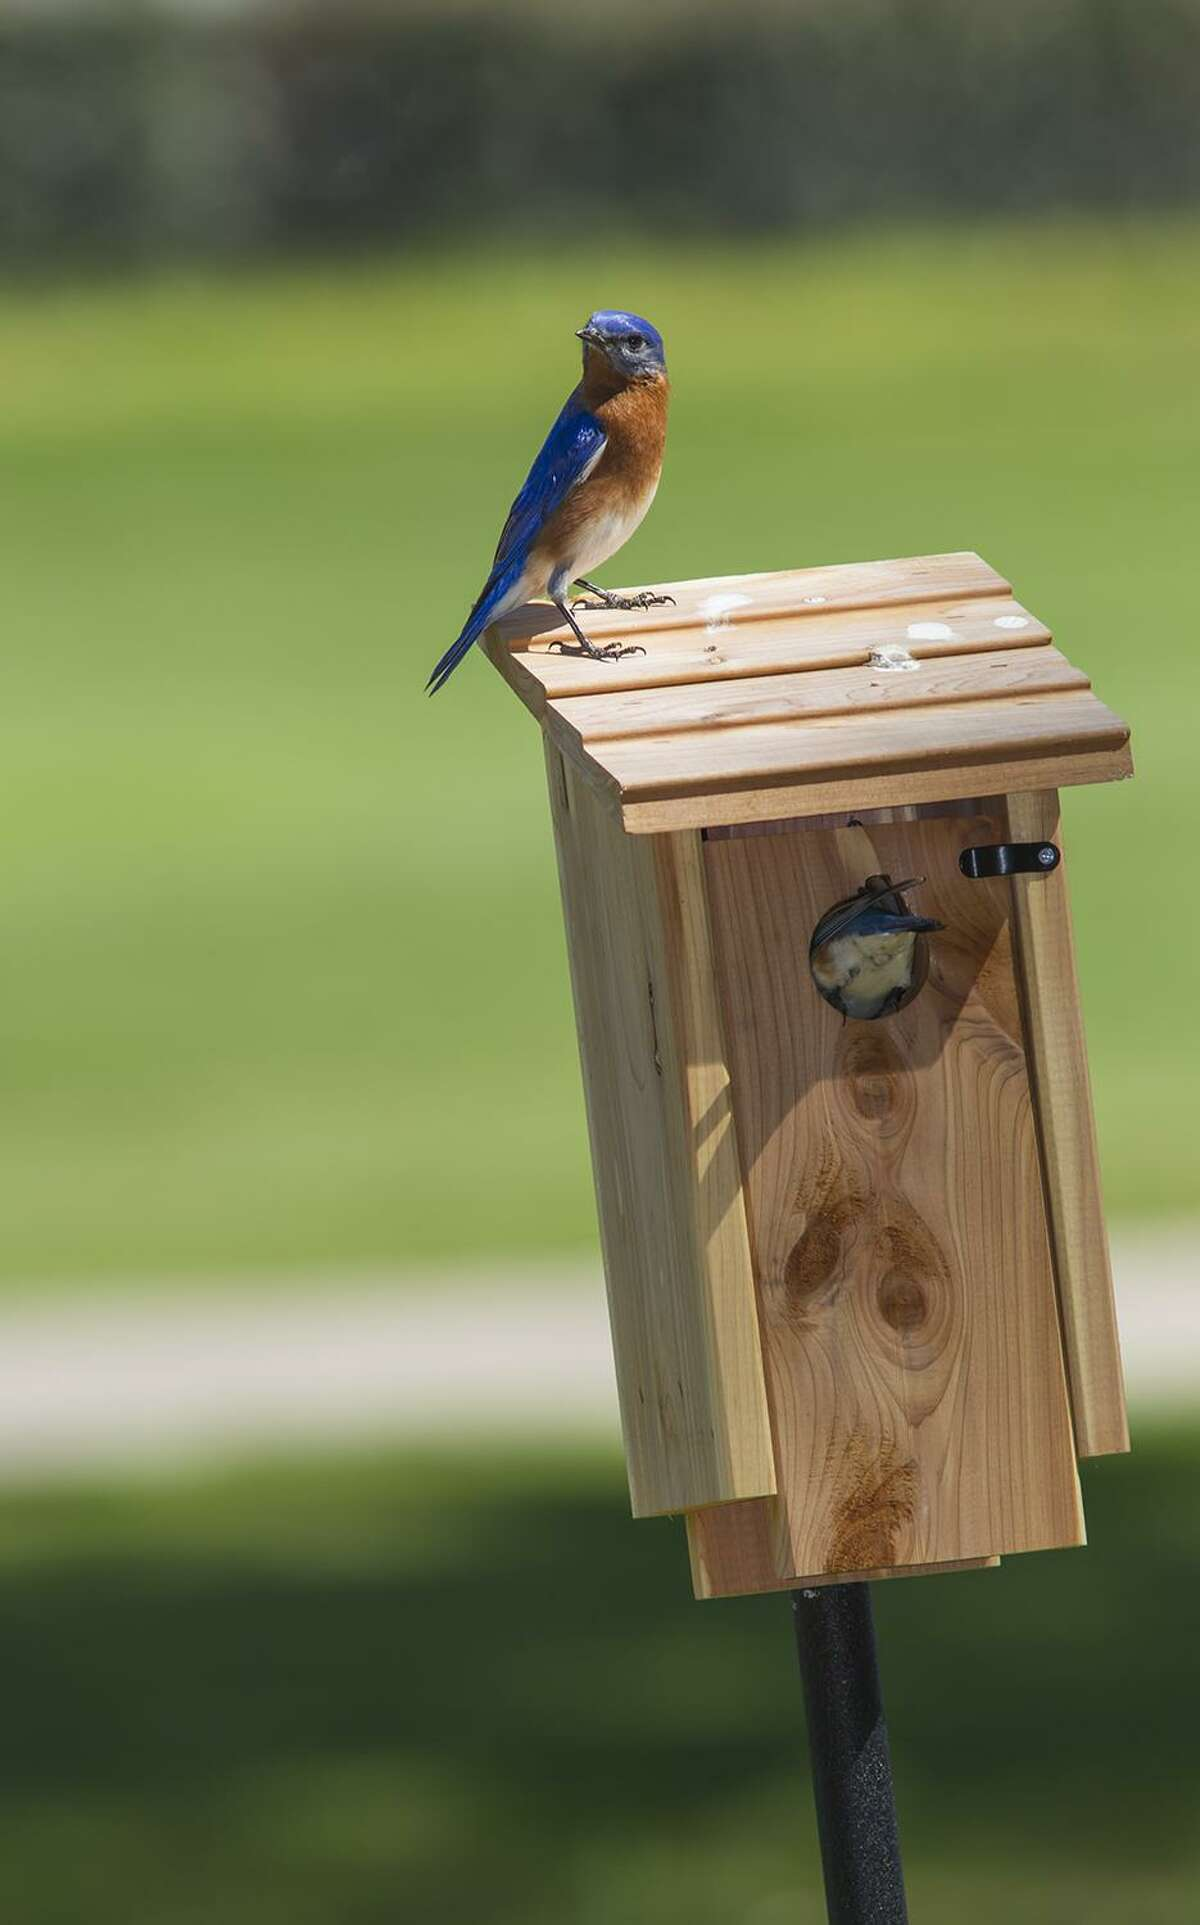 A female eastern bluebird enters her nest box while her mate keeps watch.